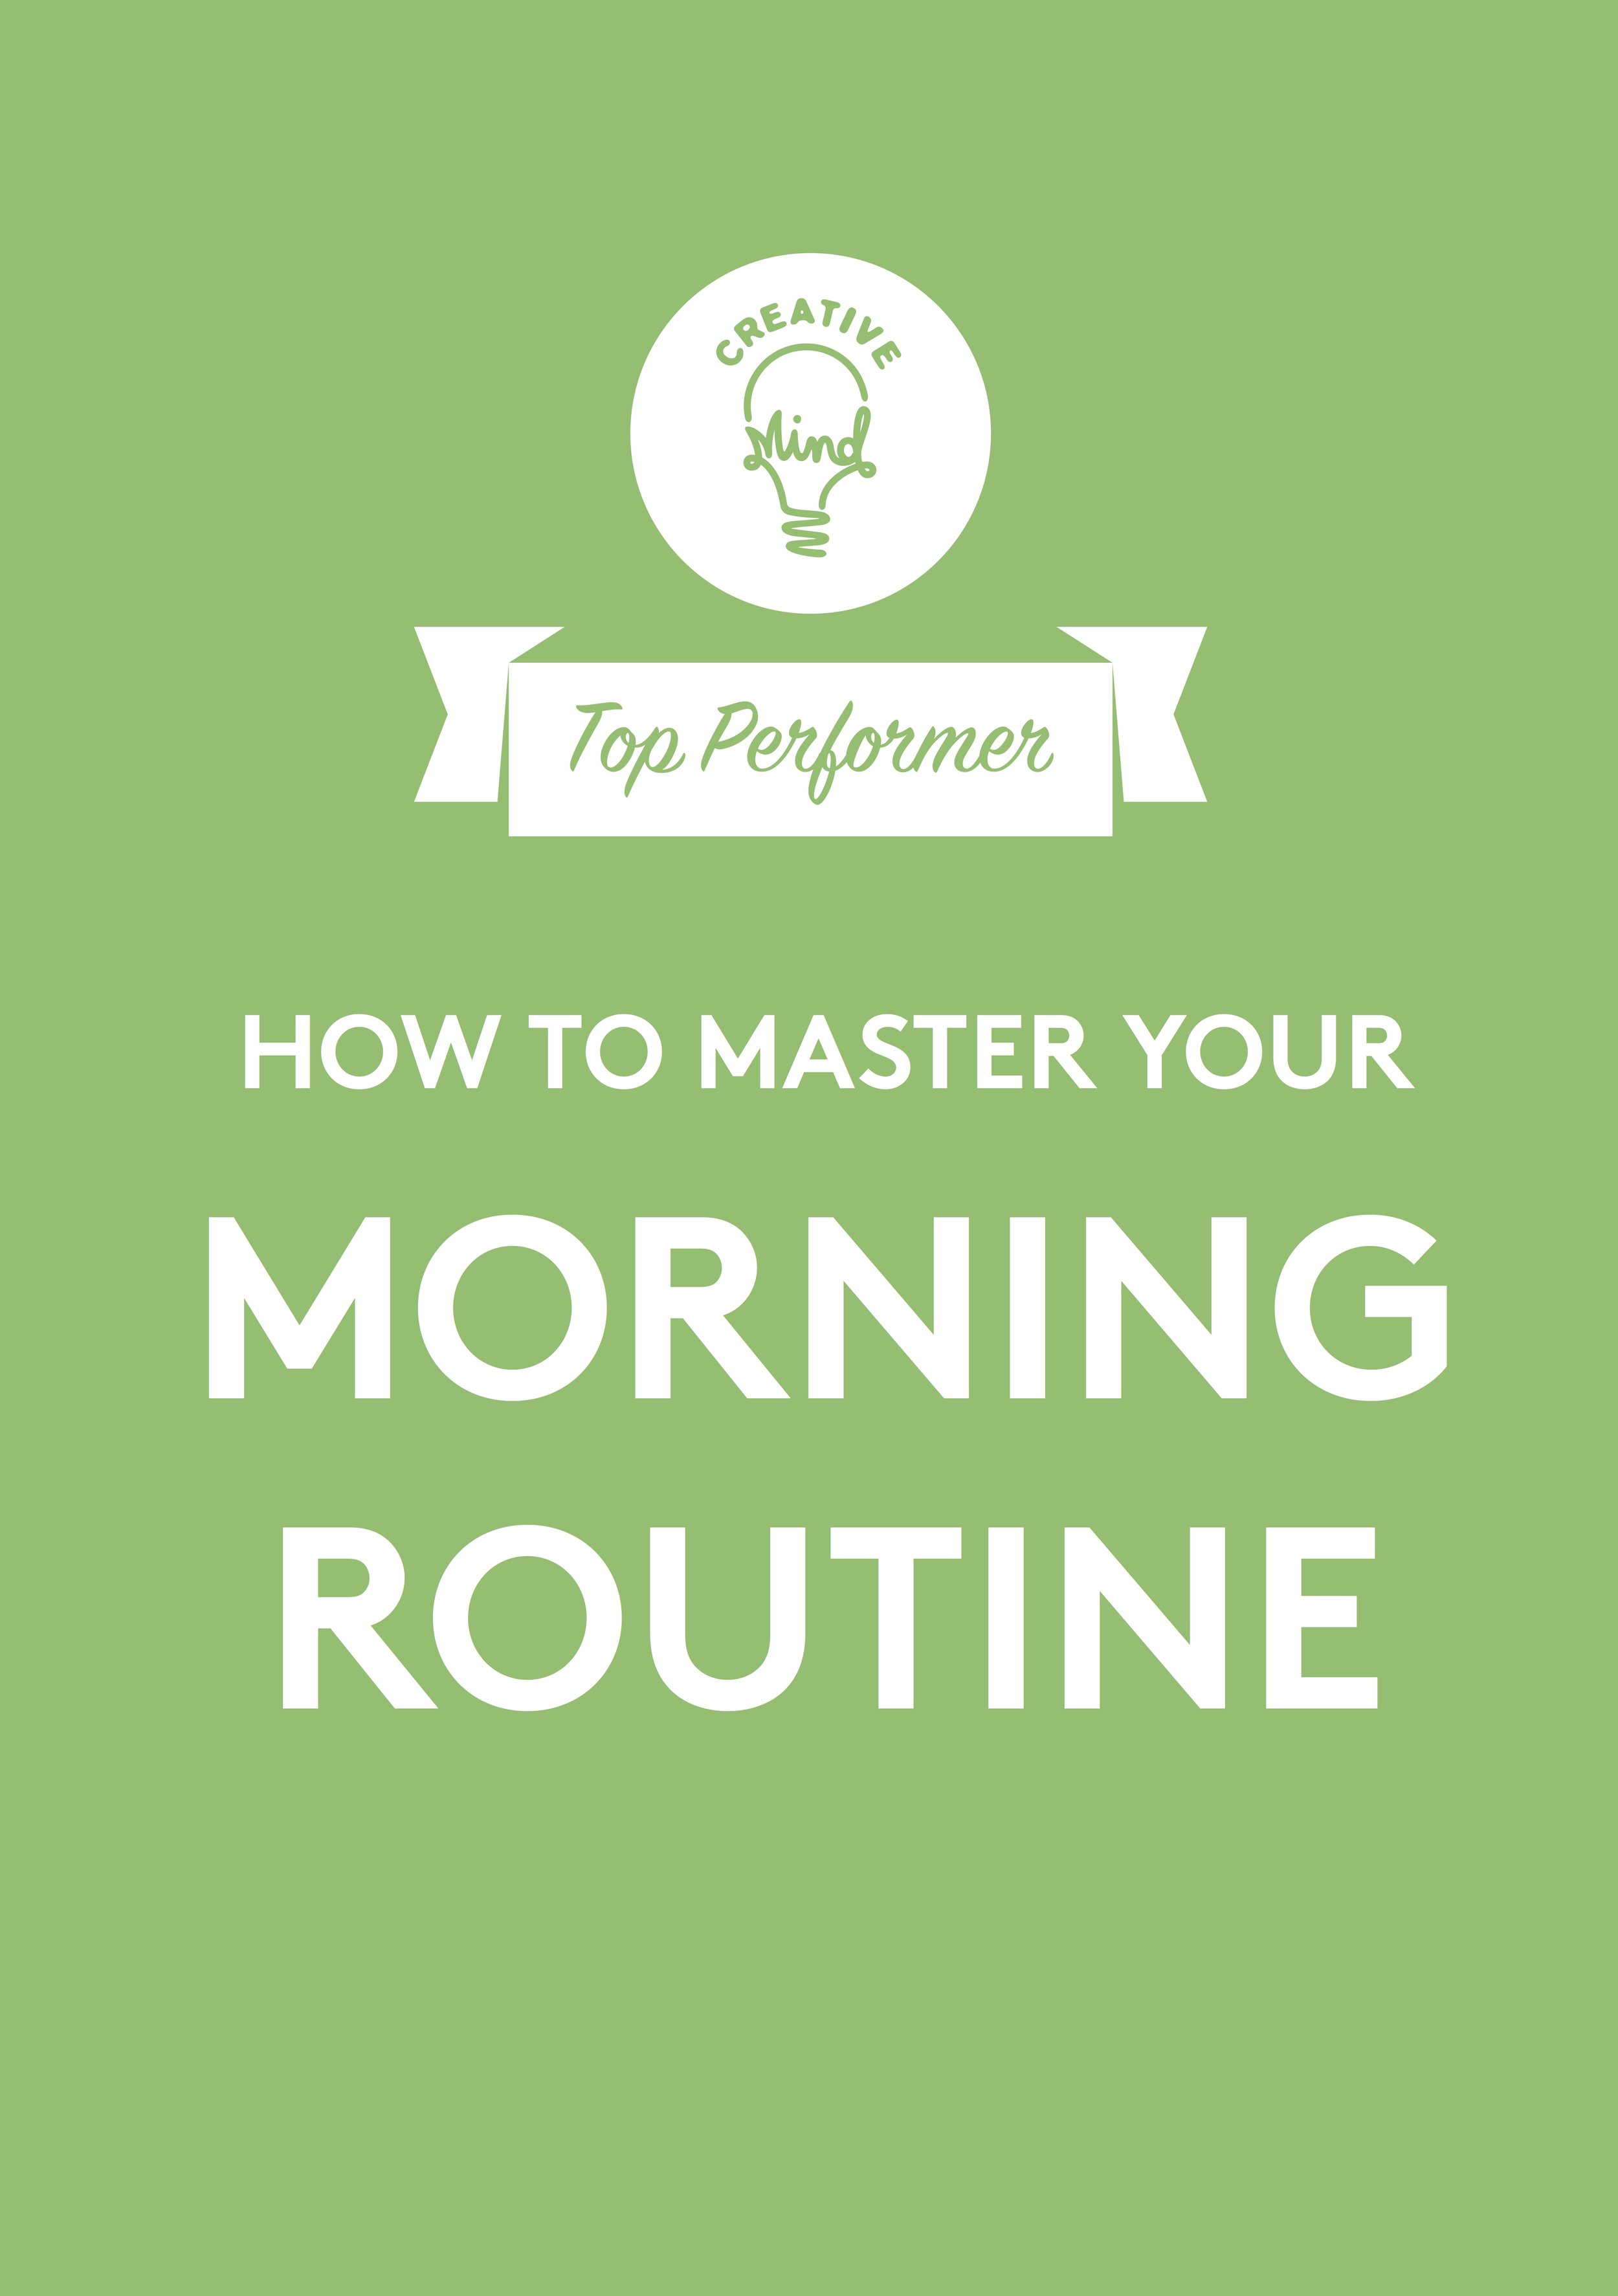 CreativeMind_Top Performer Journal_Master your morning routine copy.jpg